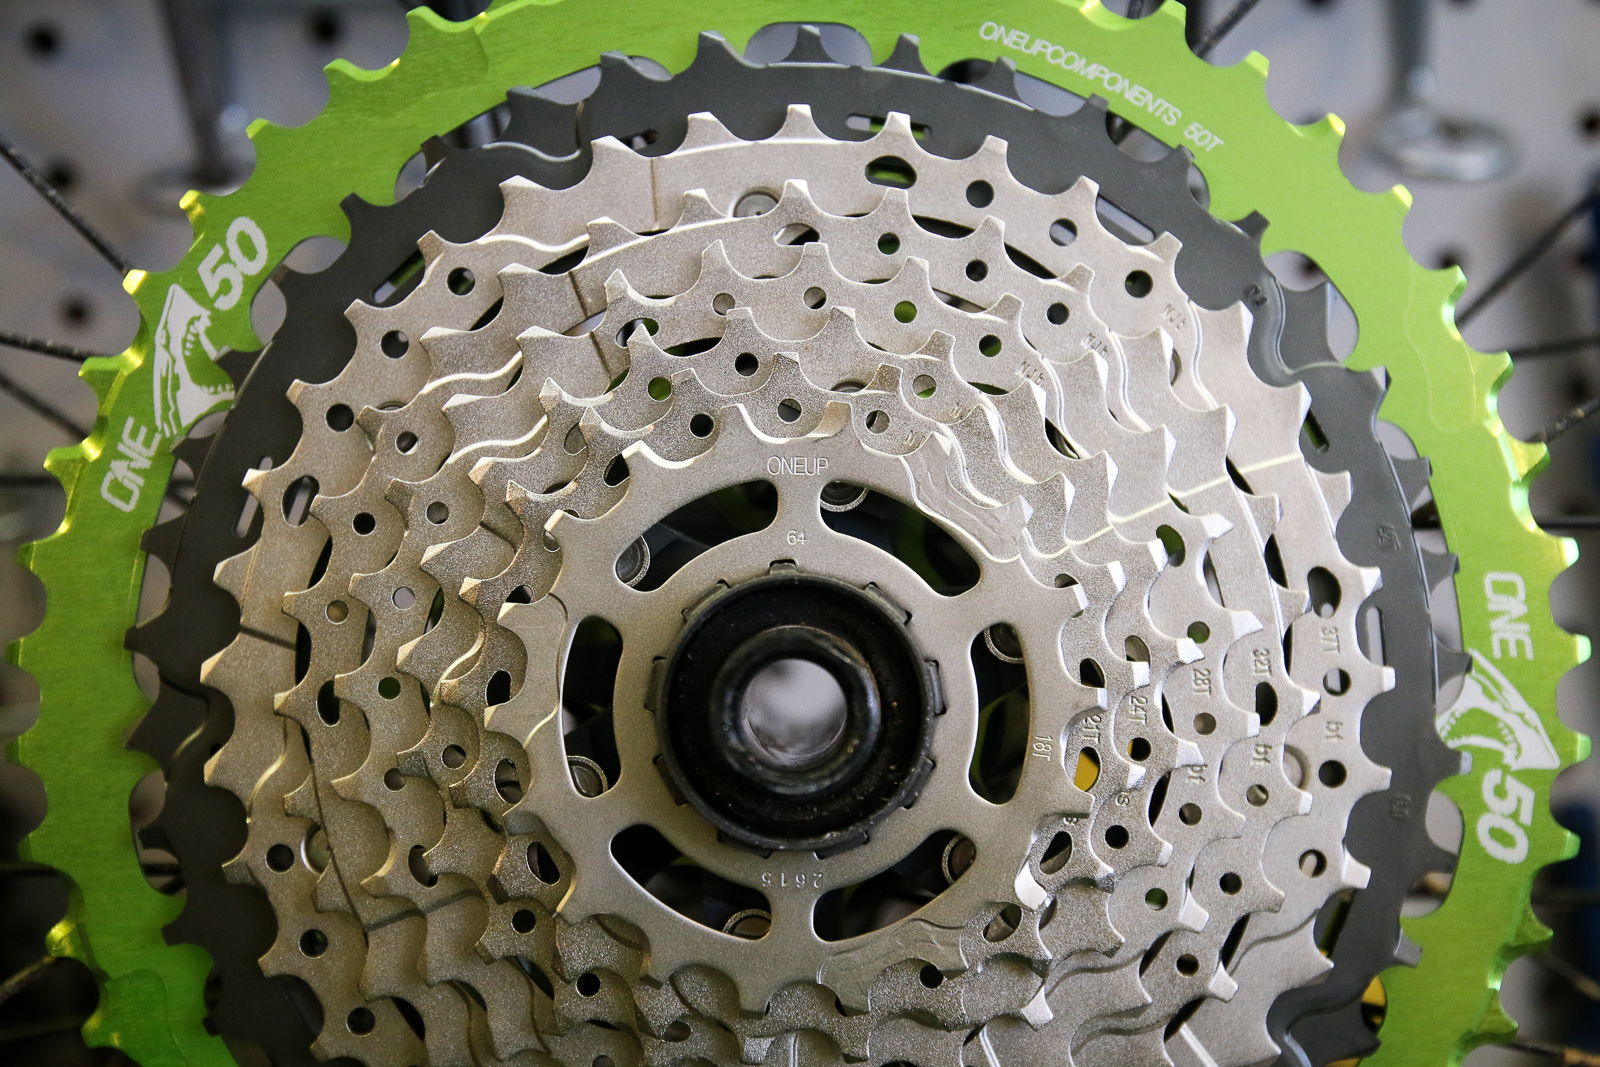 impressions oneup shark jumps shimano 11 speed cassettes to 10 50 bikerumor